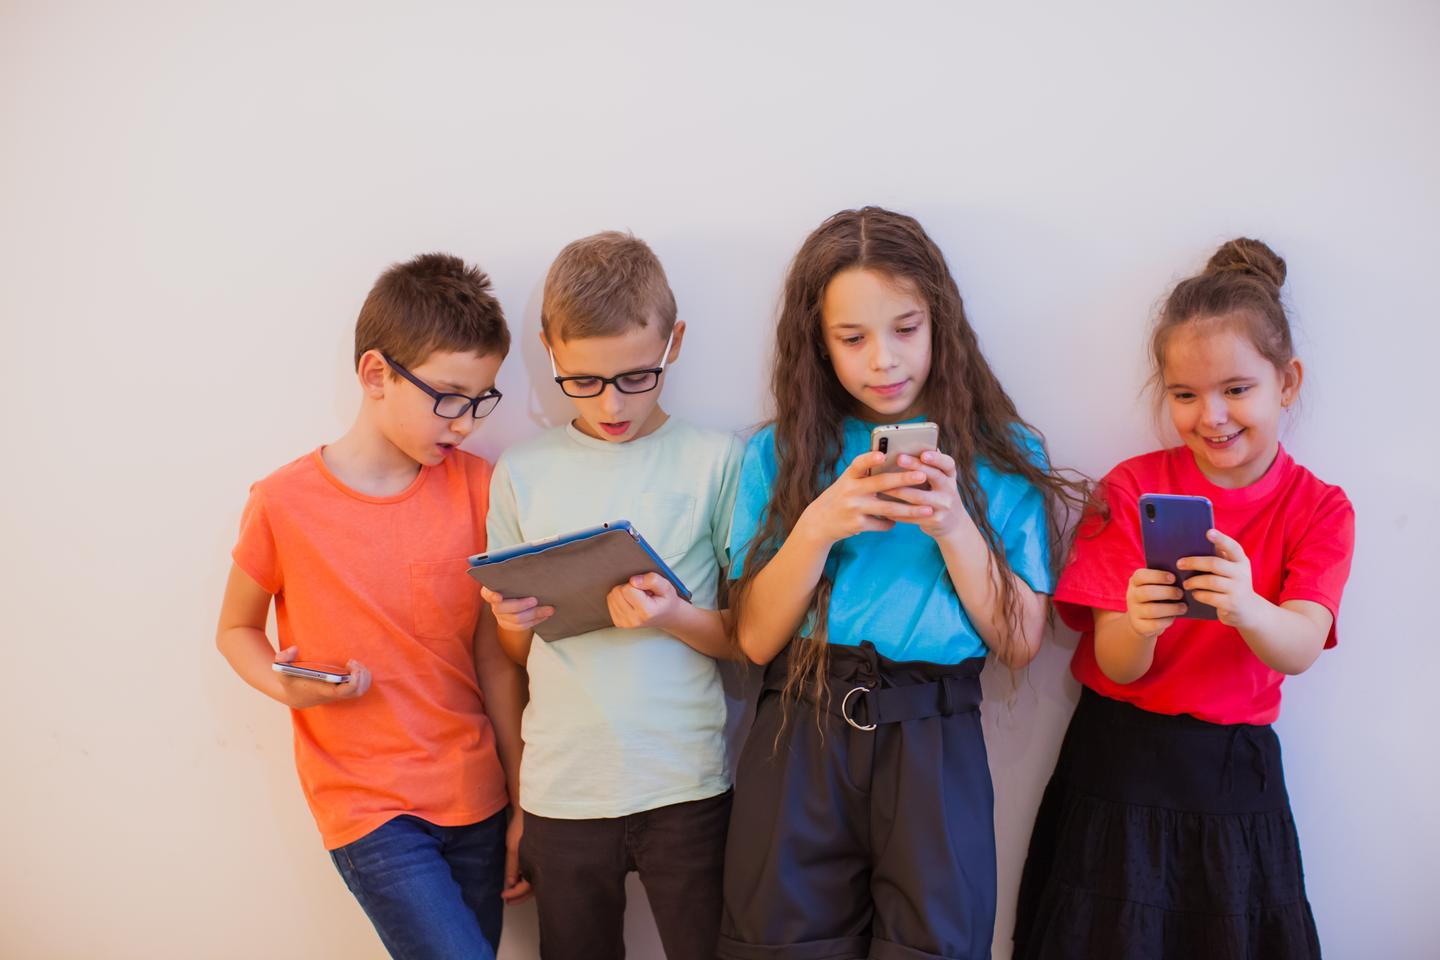 Research has found more screen time correlated with more friends